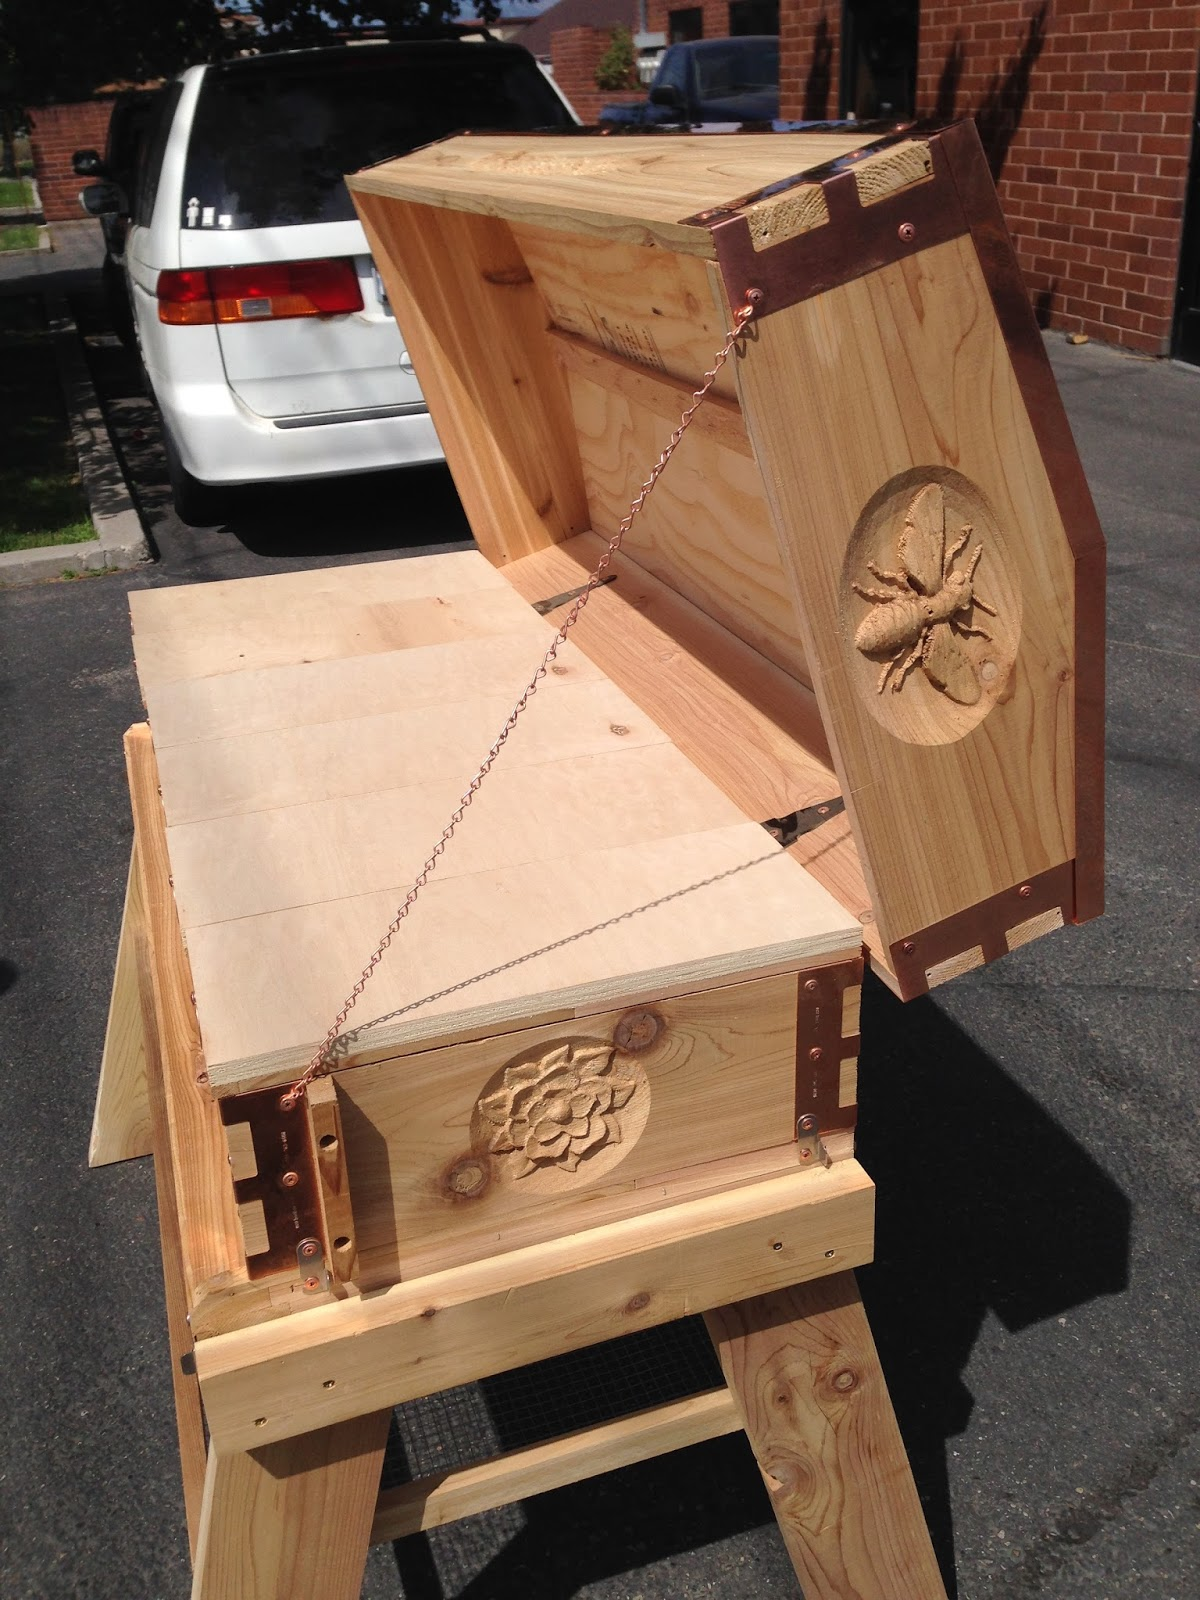 Top Bar Hive With Langstroth Standards